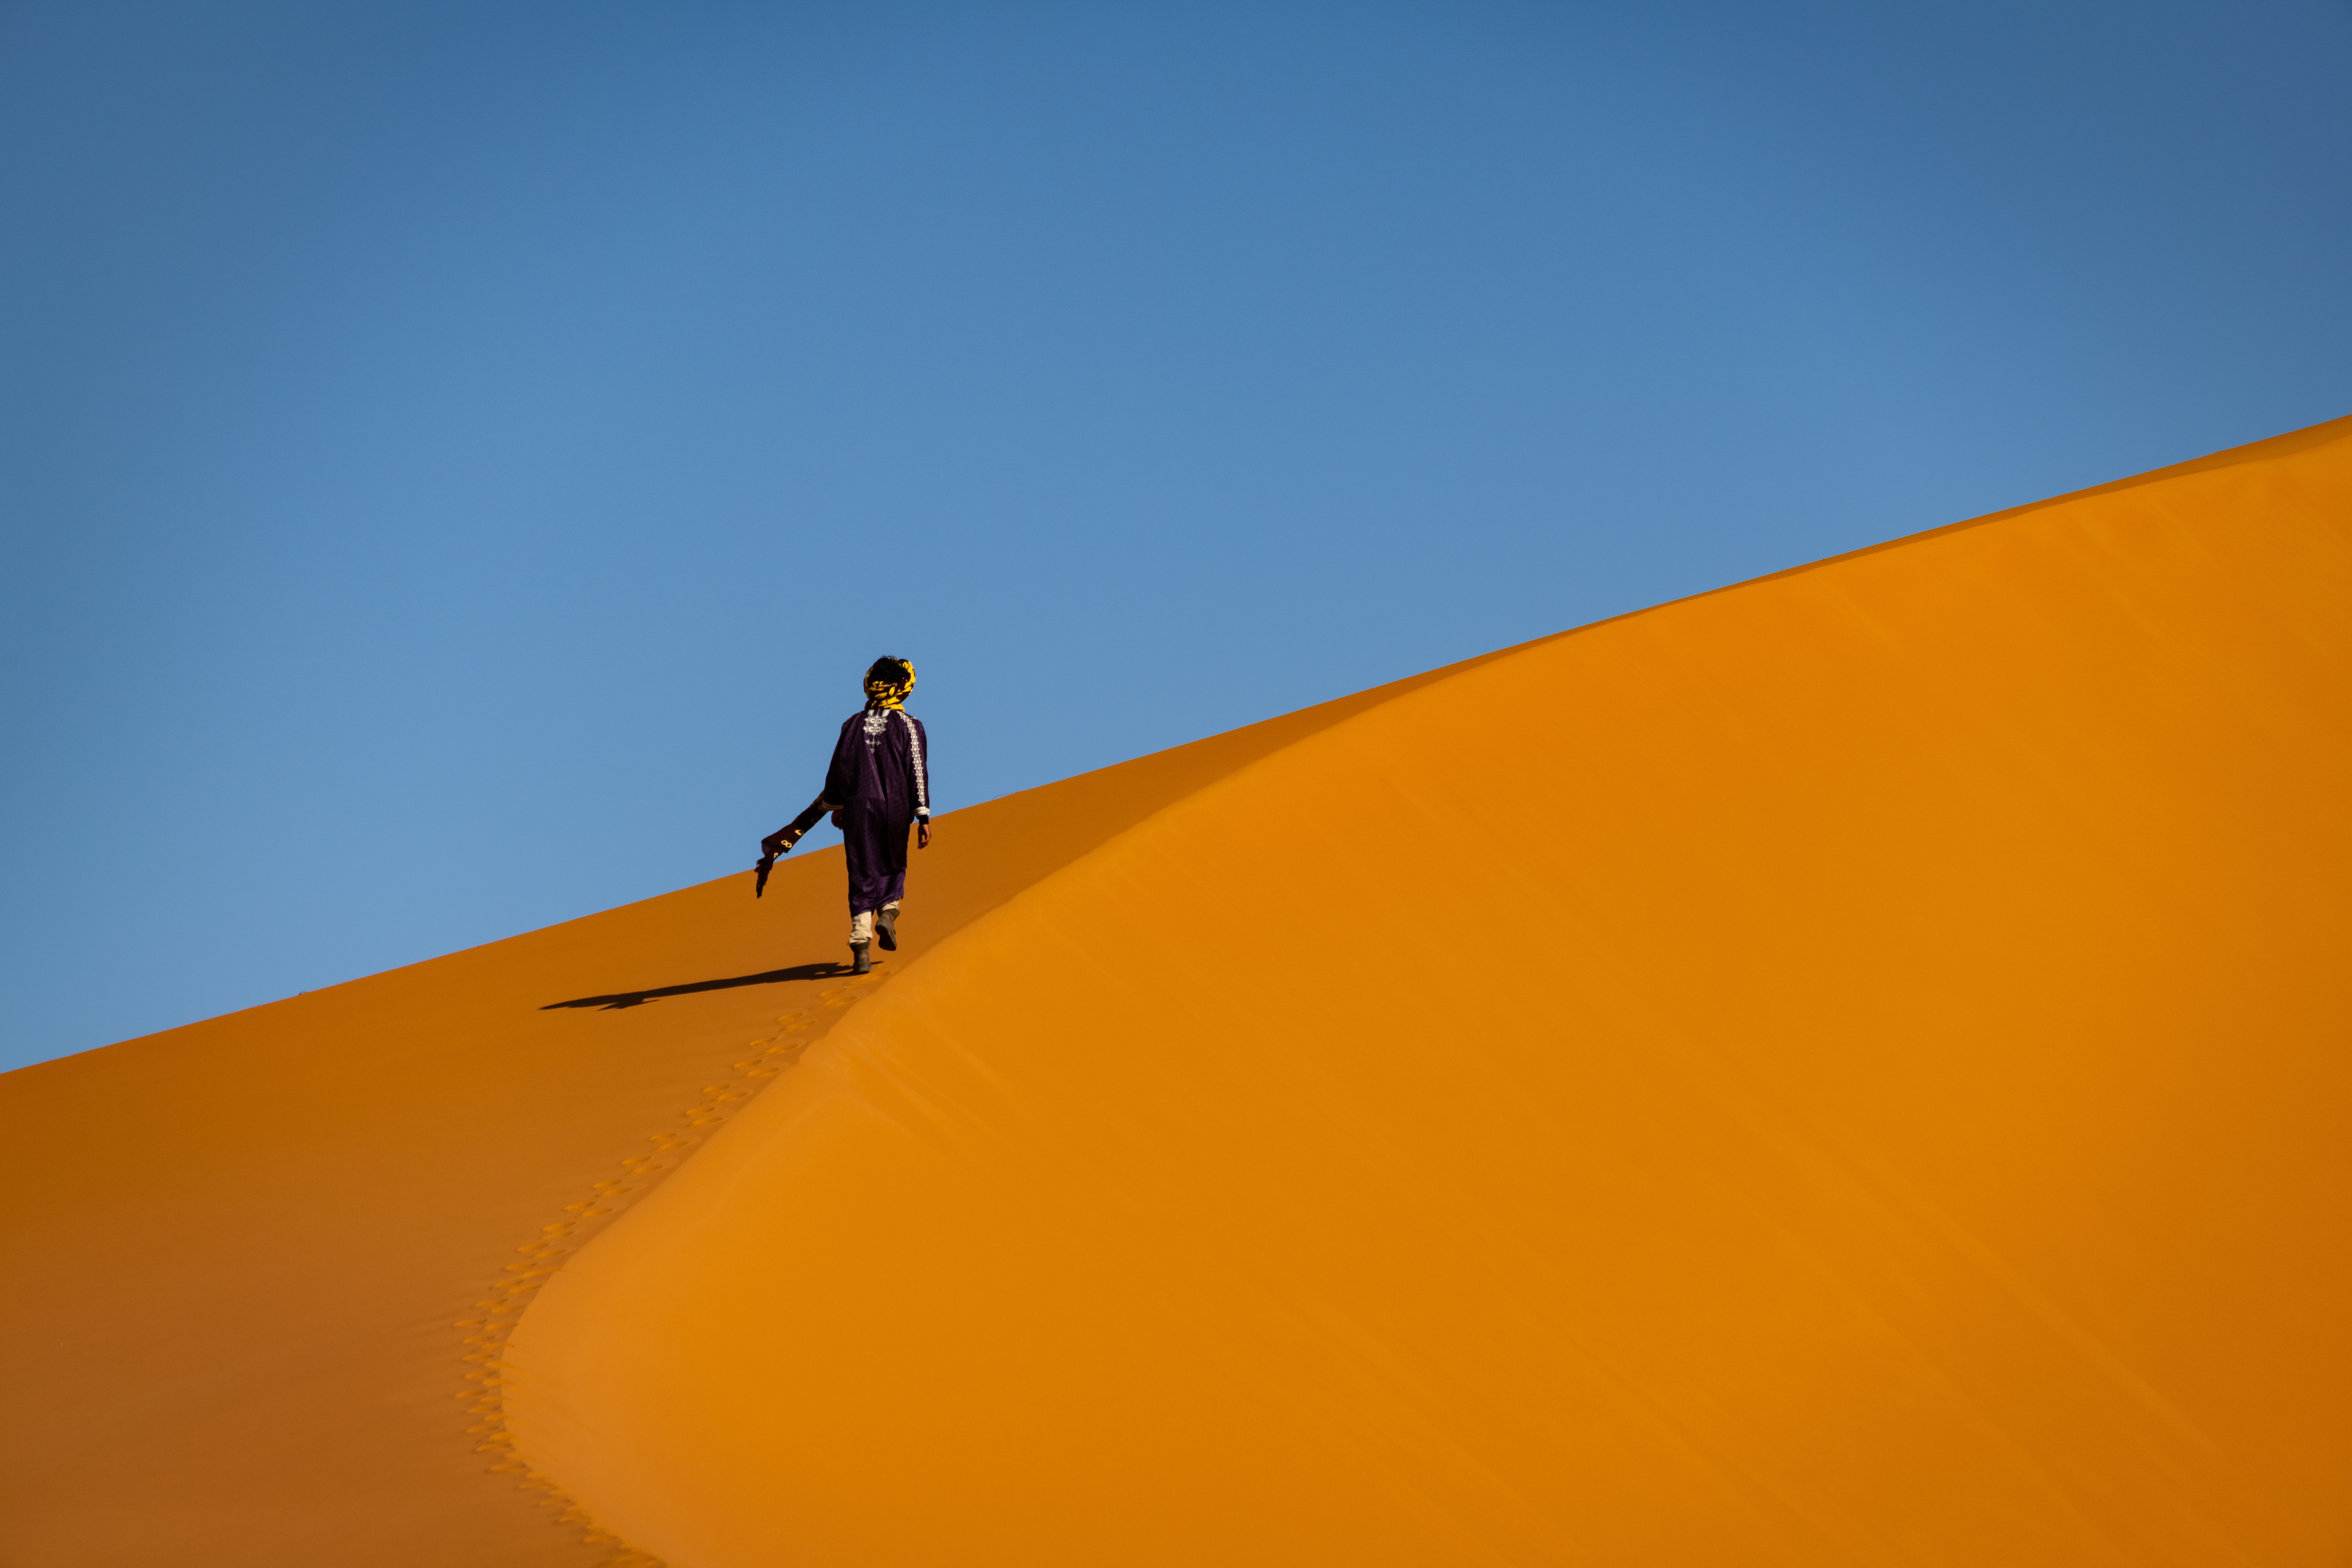 Walking up a dune